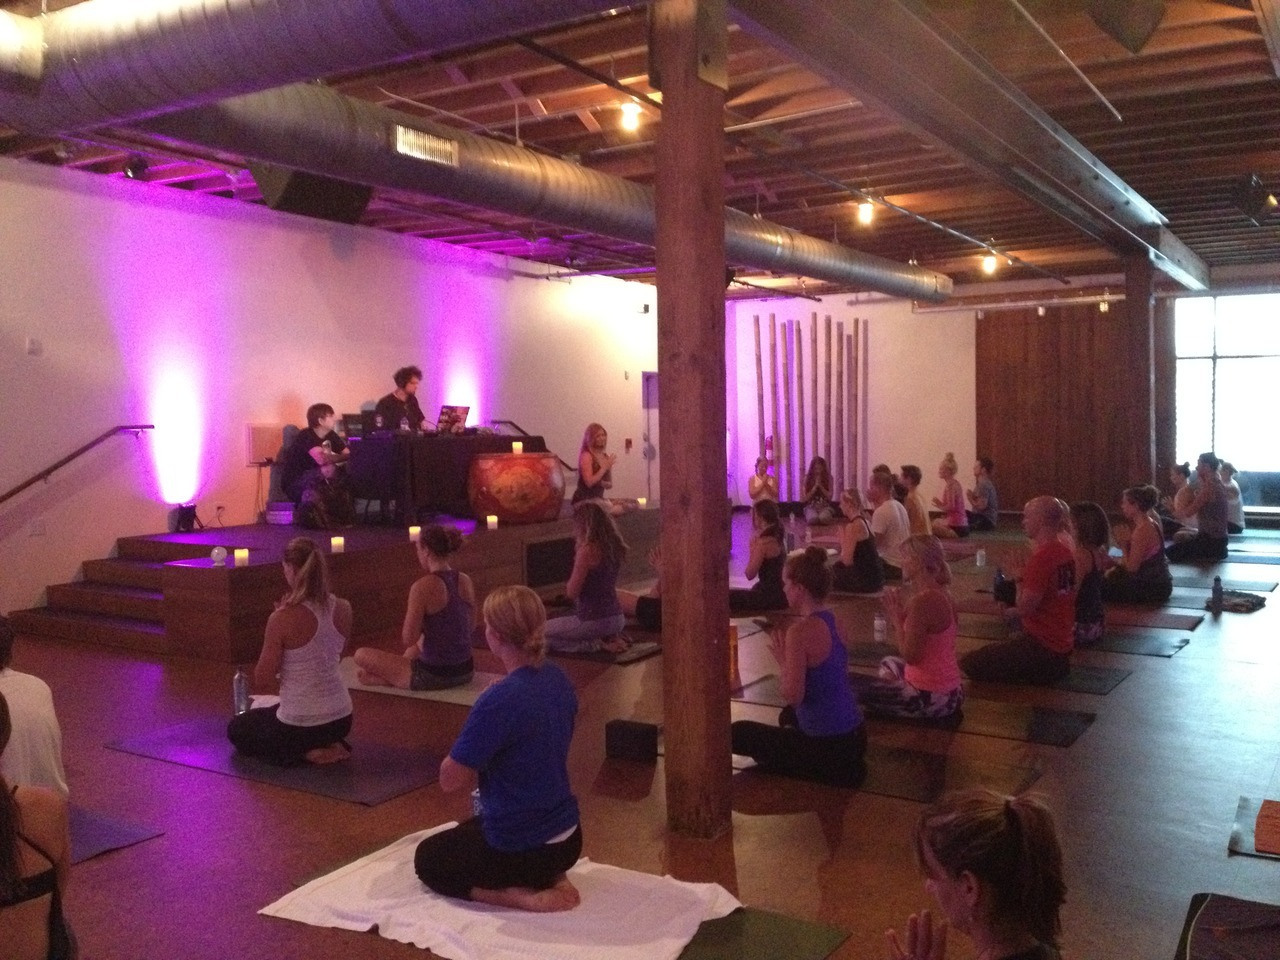 giocondayoga:  We had such a great time at Yoga Jam on Saturday Night.  Sign up online now to join me and el john Selector on August 18th for the next one!